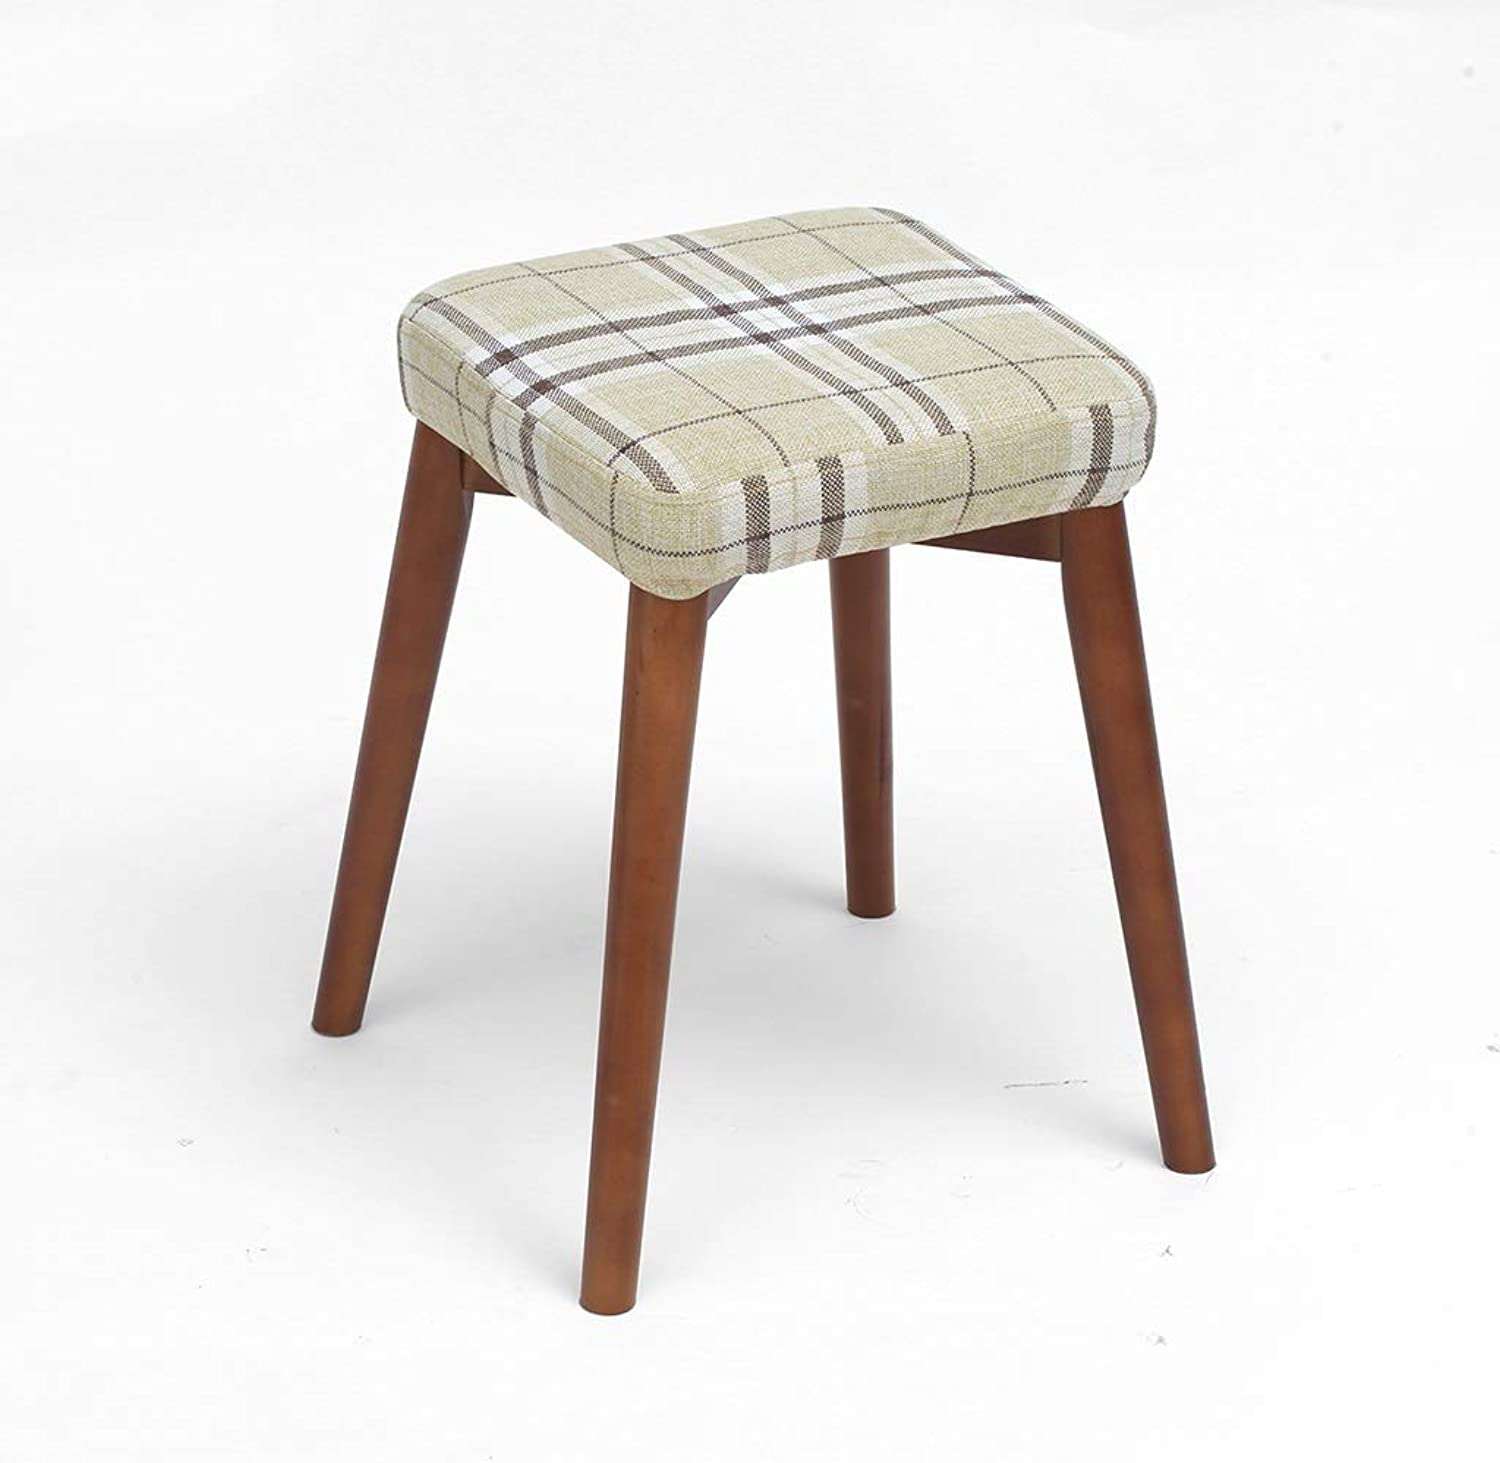 CXQ Fashion Creative Stools Beech Wood Dining Table Cloth Dressing Stool Home Bench Coarse Linen Striped Square Stool